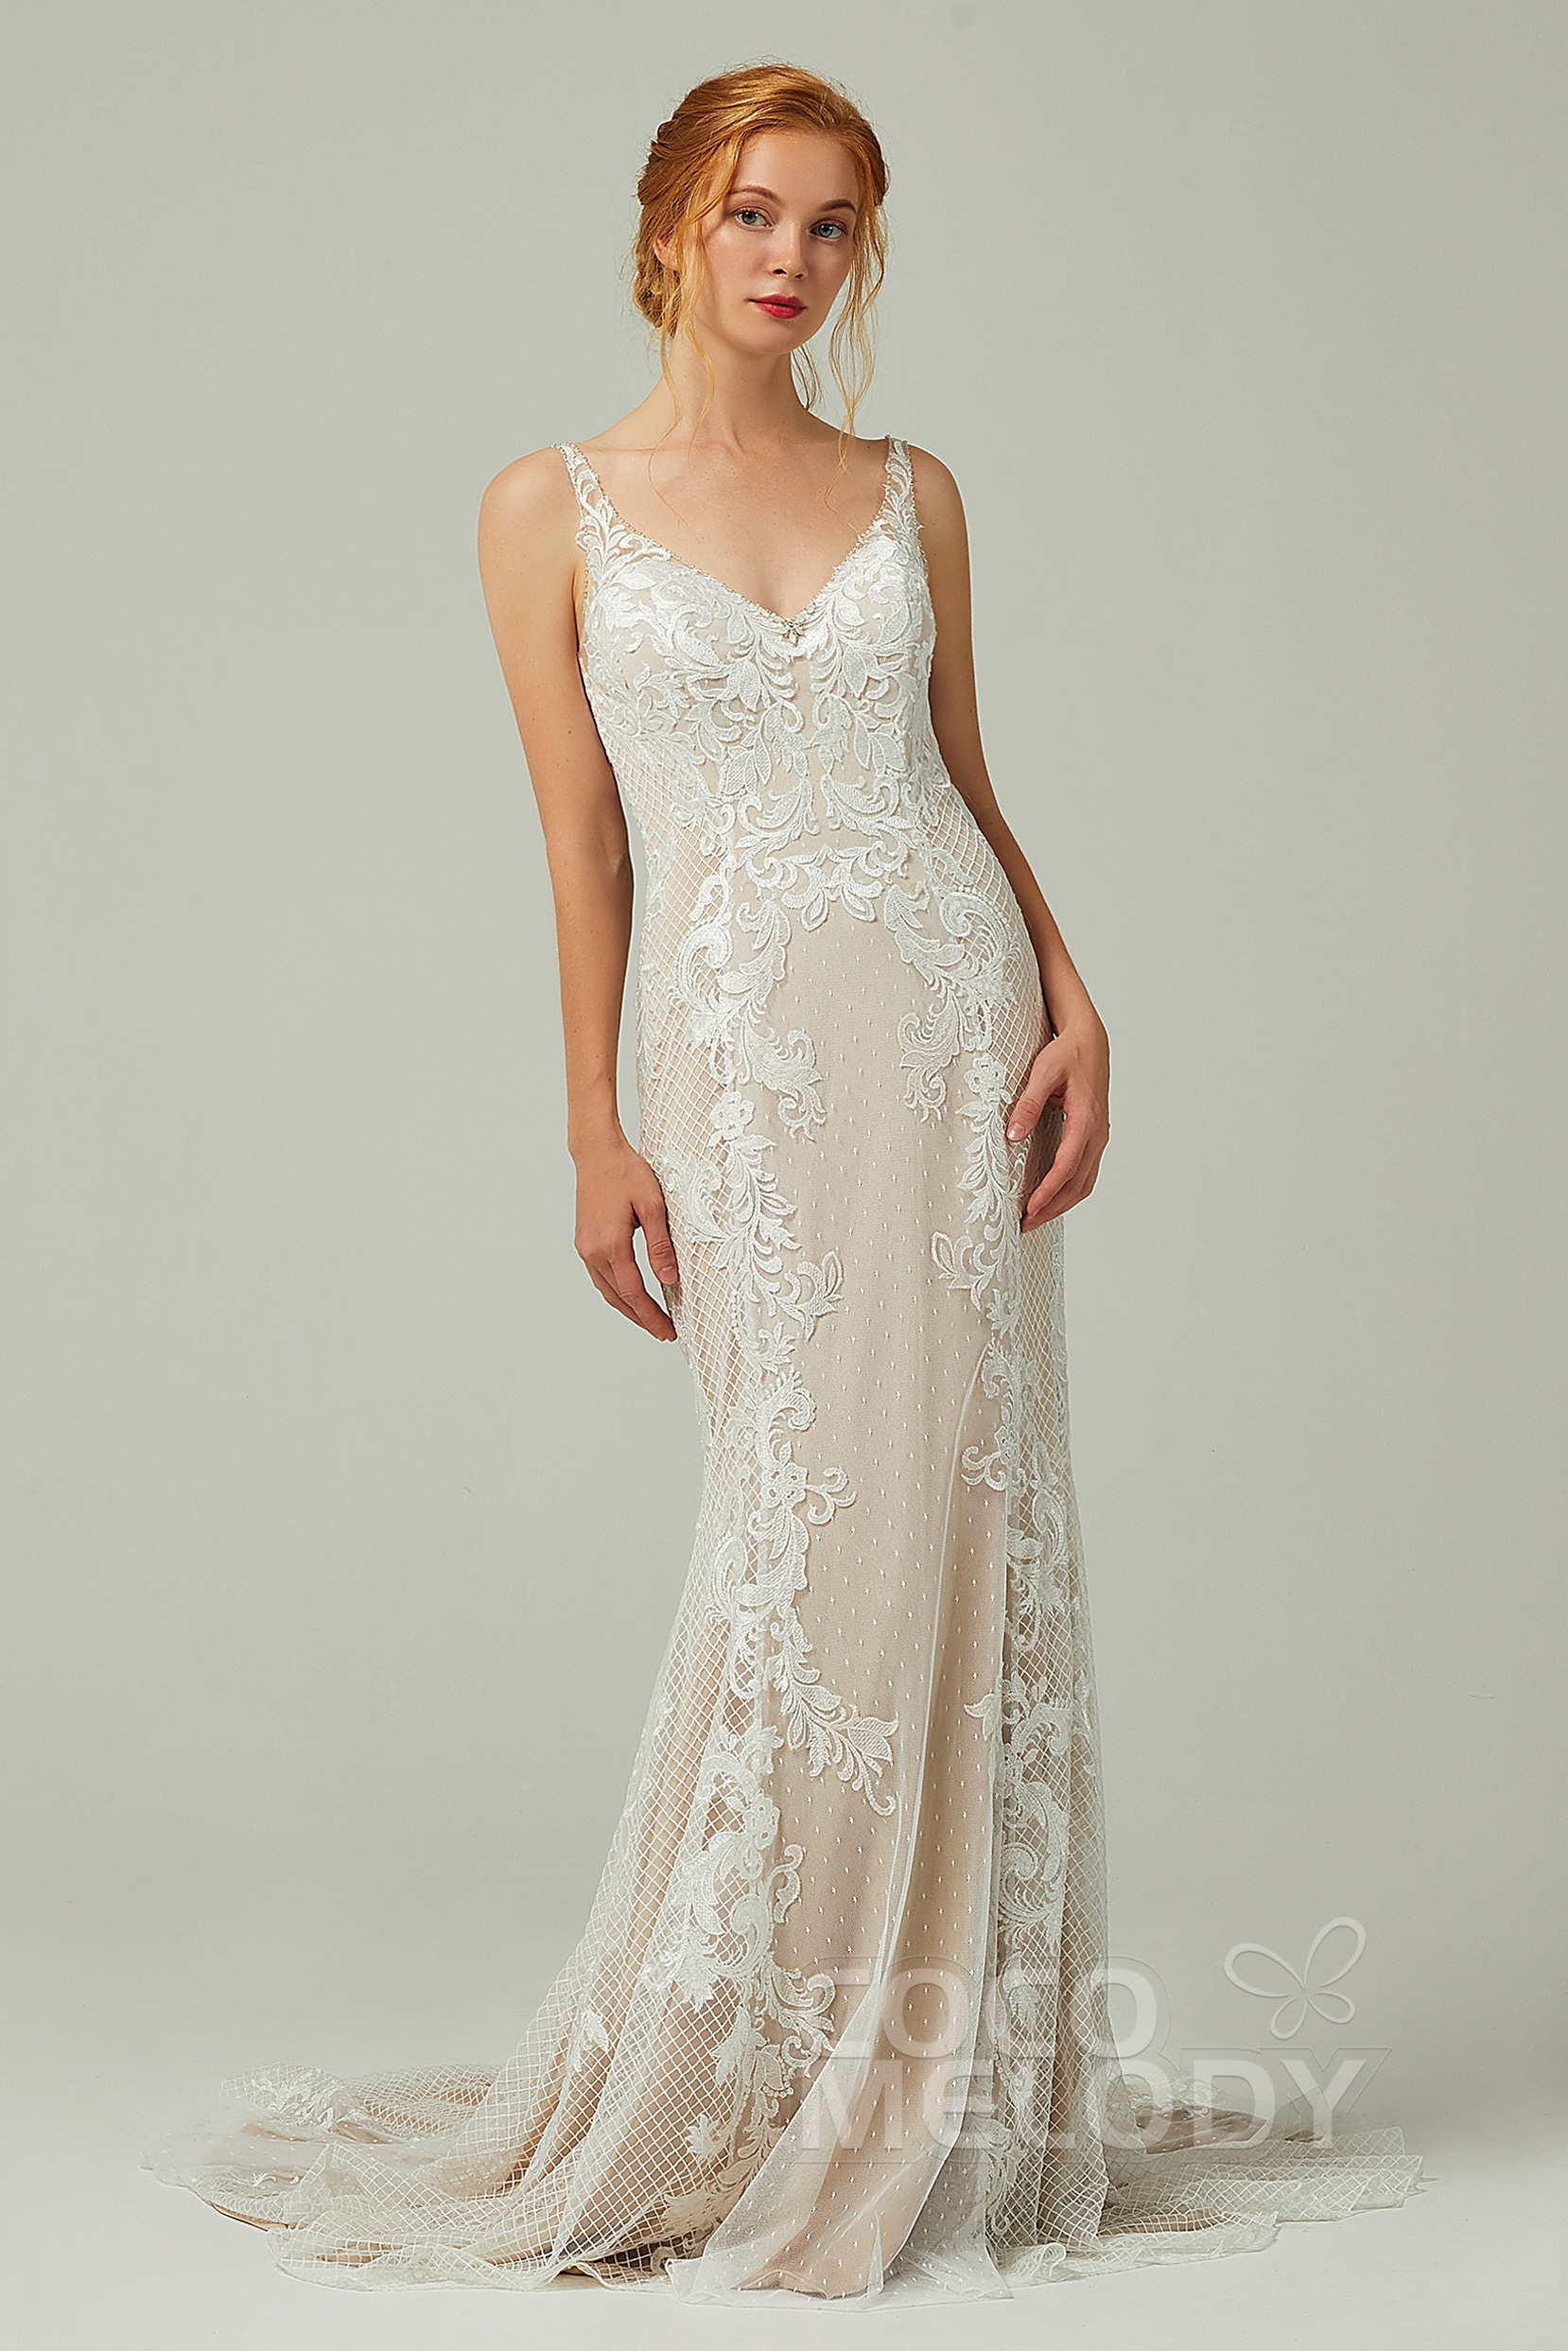 89c1cbb4a8 Sheath & Column Wedding Dress | Cocomelody®